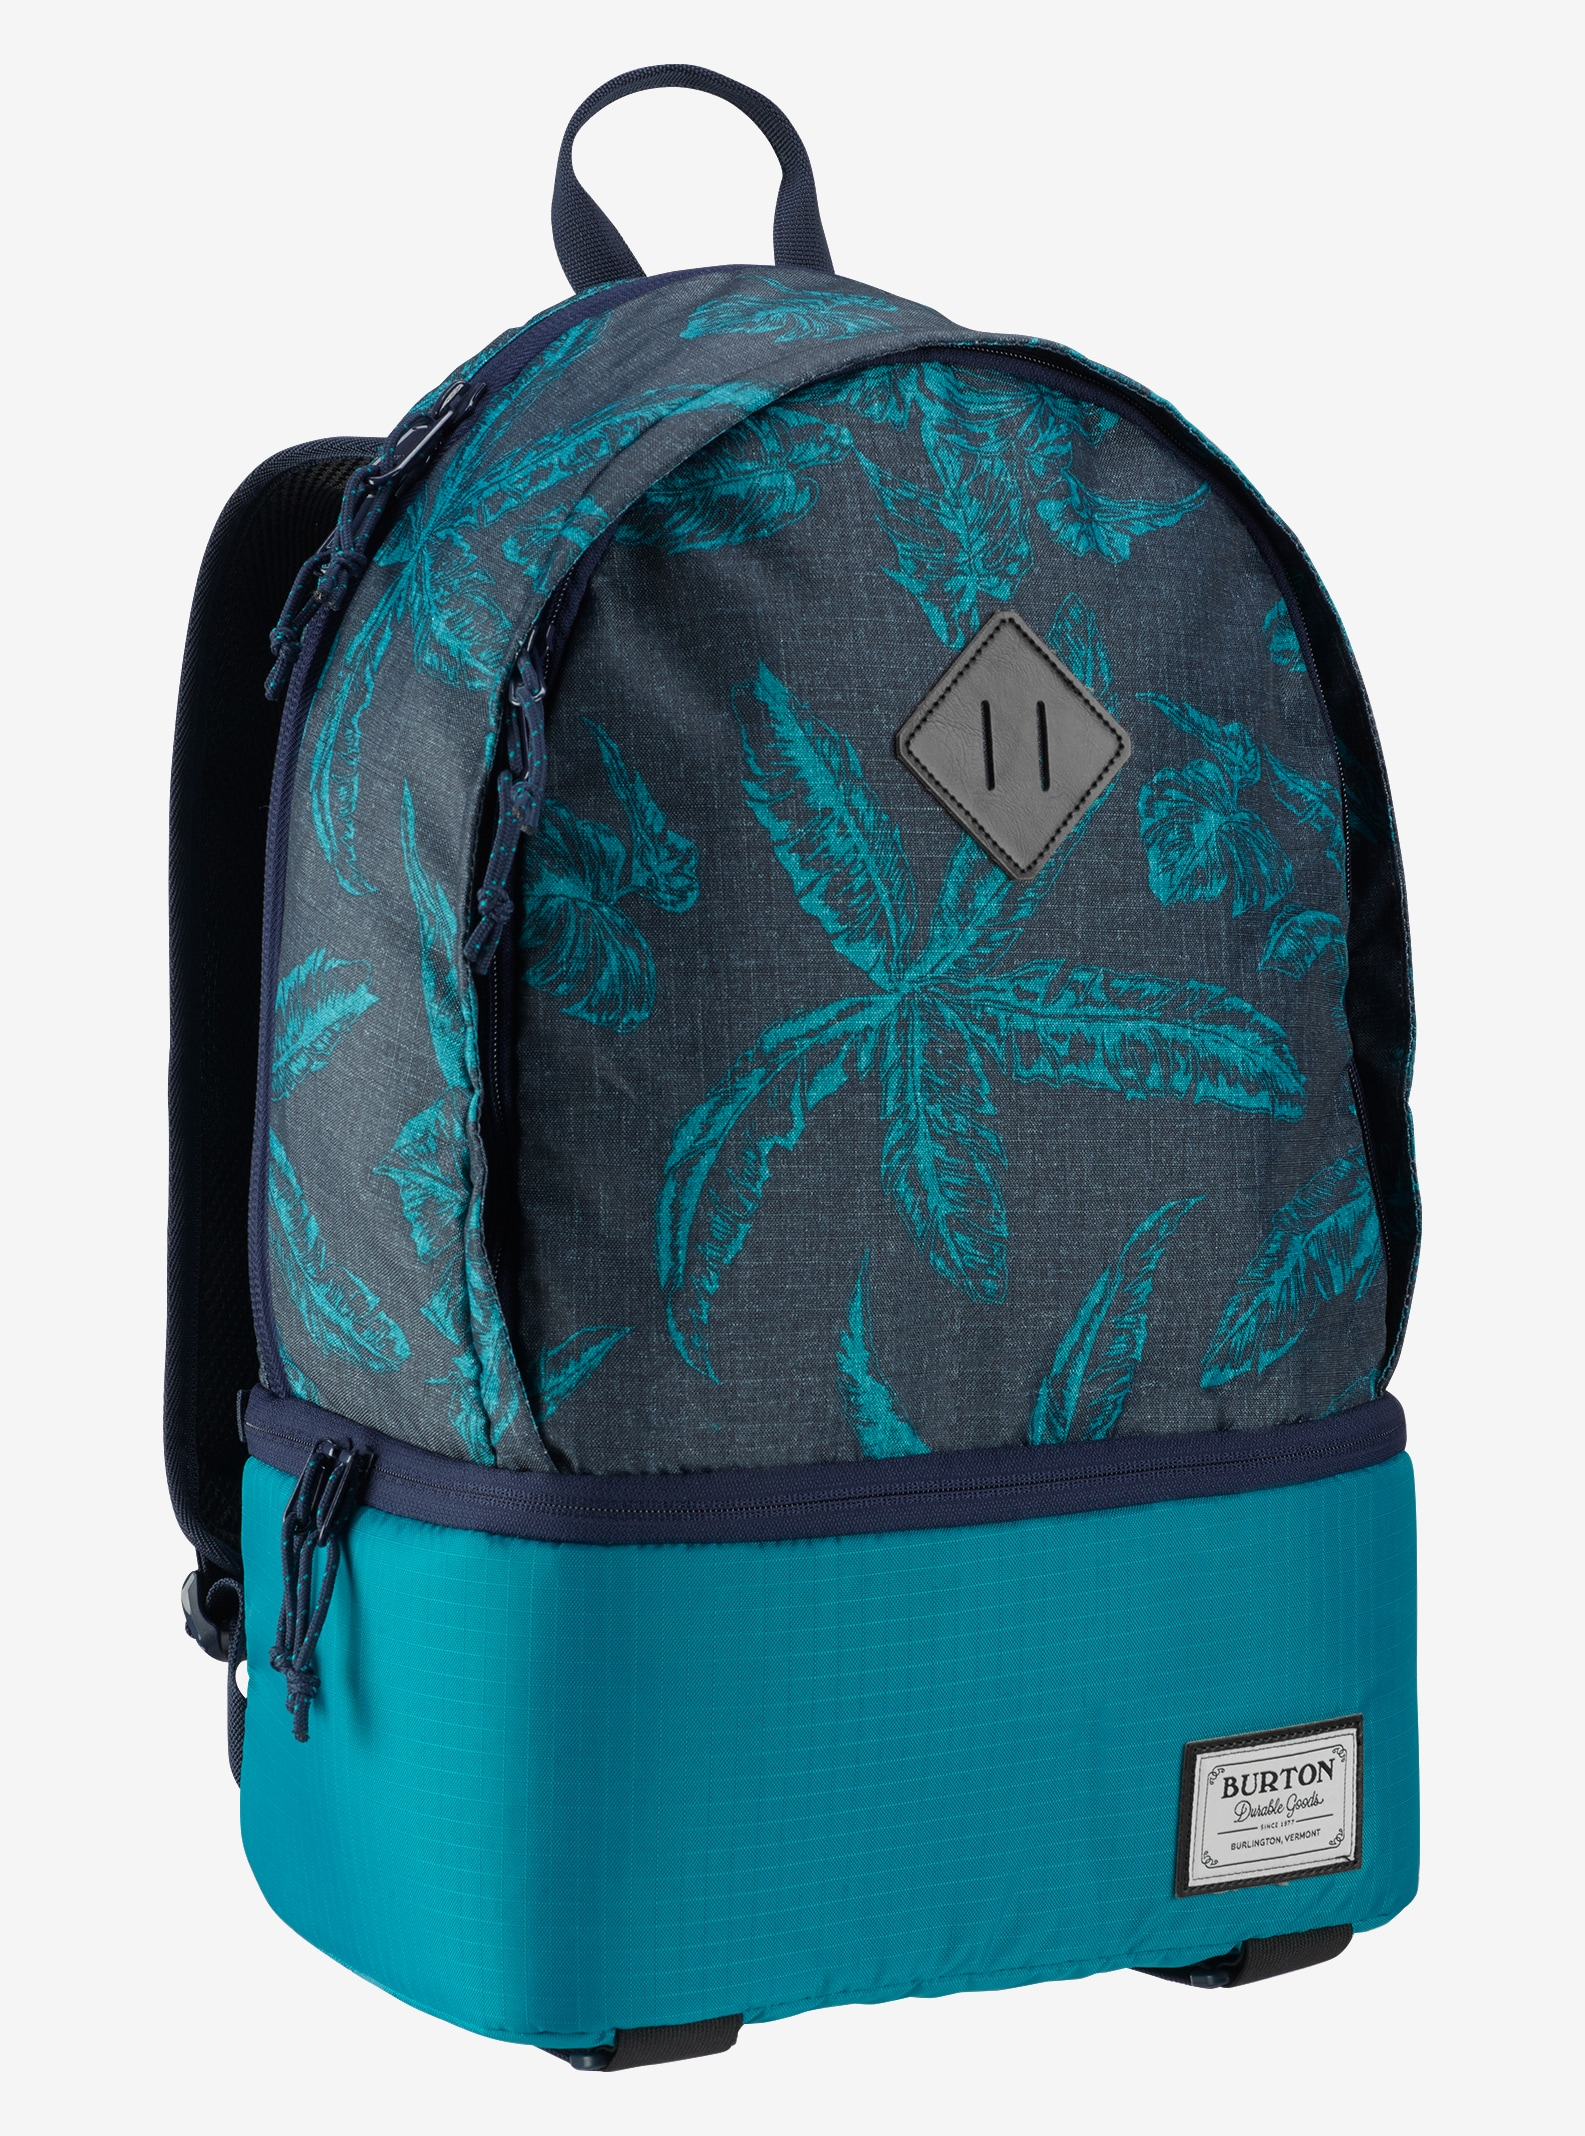 Burton Big Buddy Backpack shown in Tropical Print